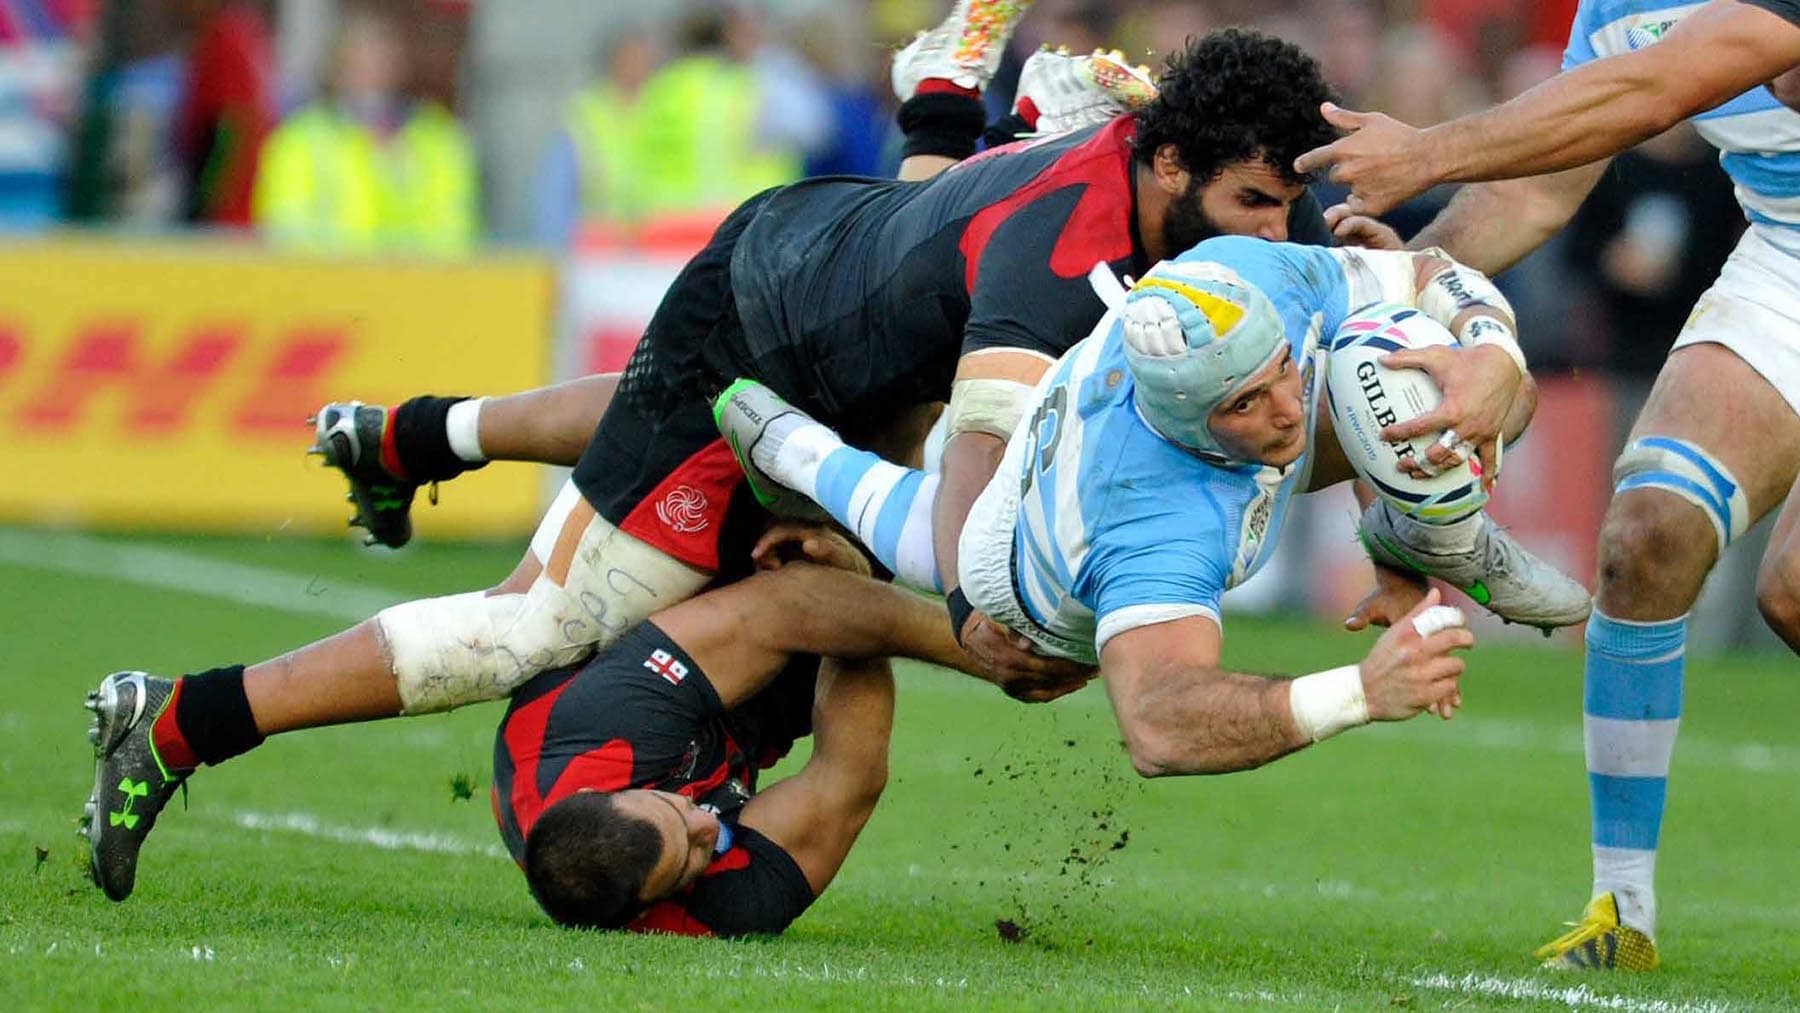 Rugby World Cup. Sports & Editorial Photography from © Neil Munns Photography